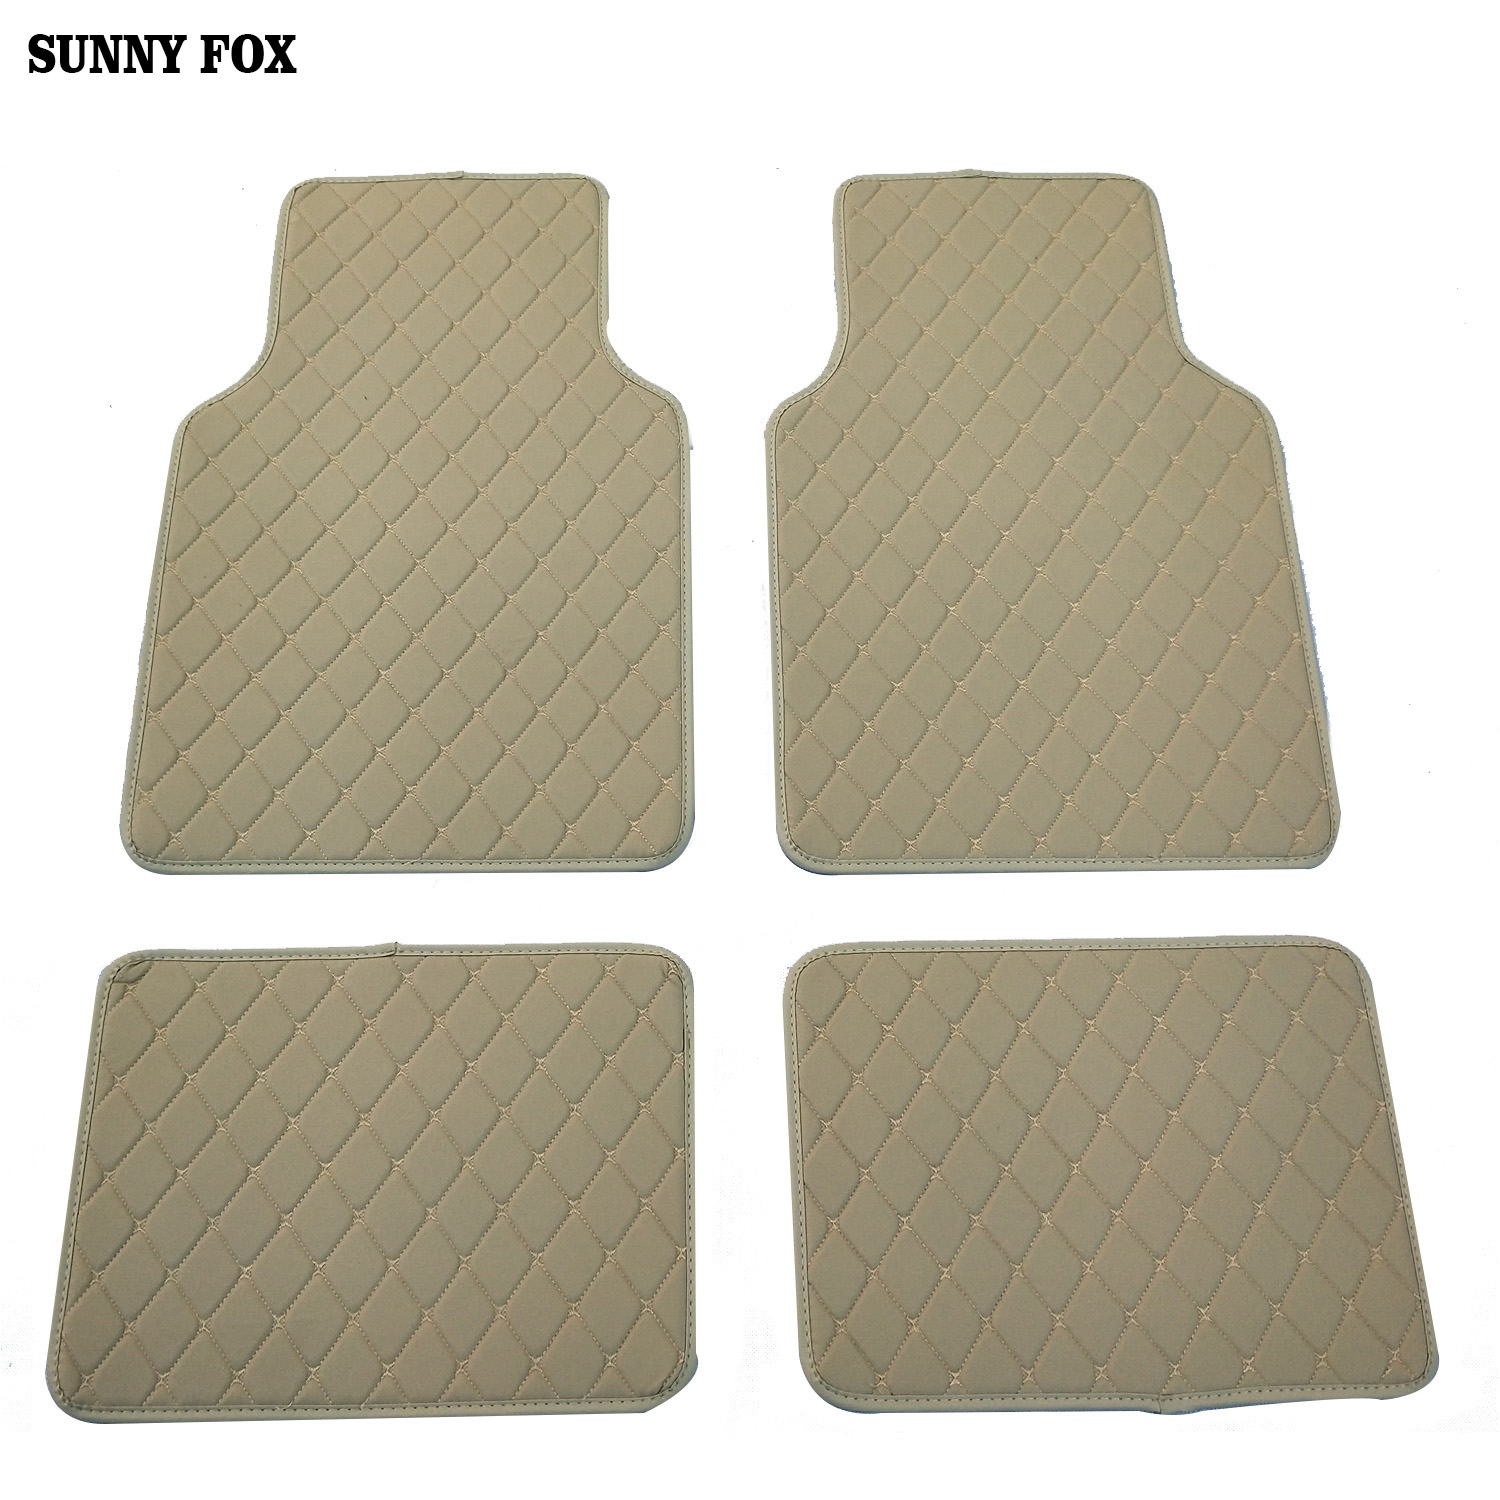 Car-Floor-Mats Carpet-Liners Rugs Class-W222 Universal Mercedes-Benz W221 S400 Luxury title=